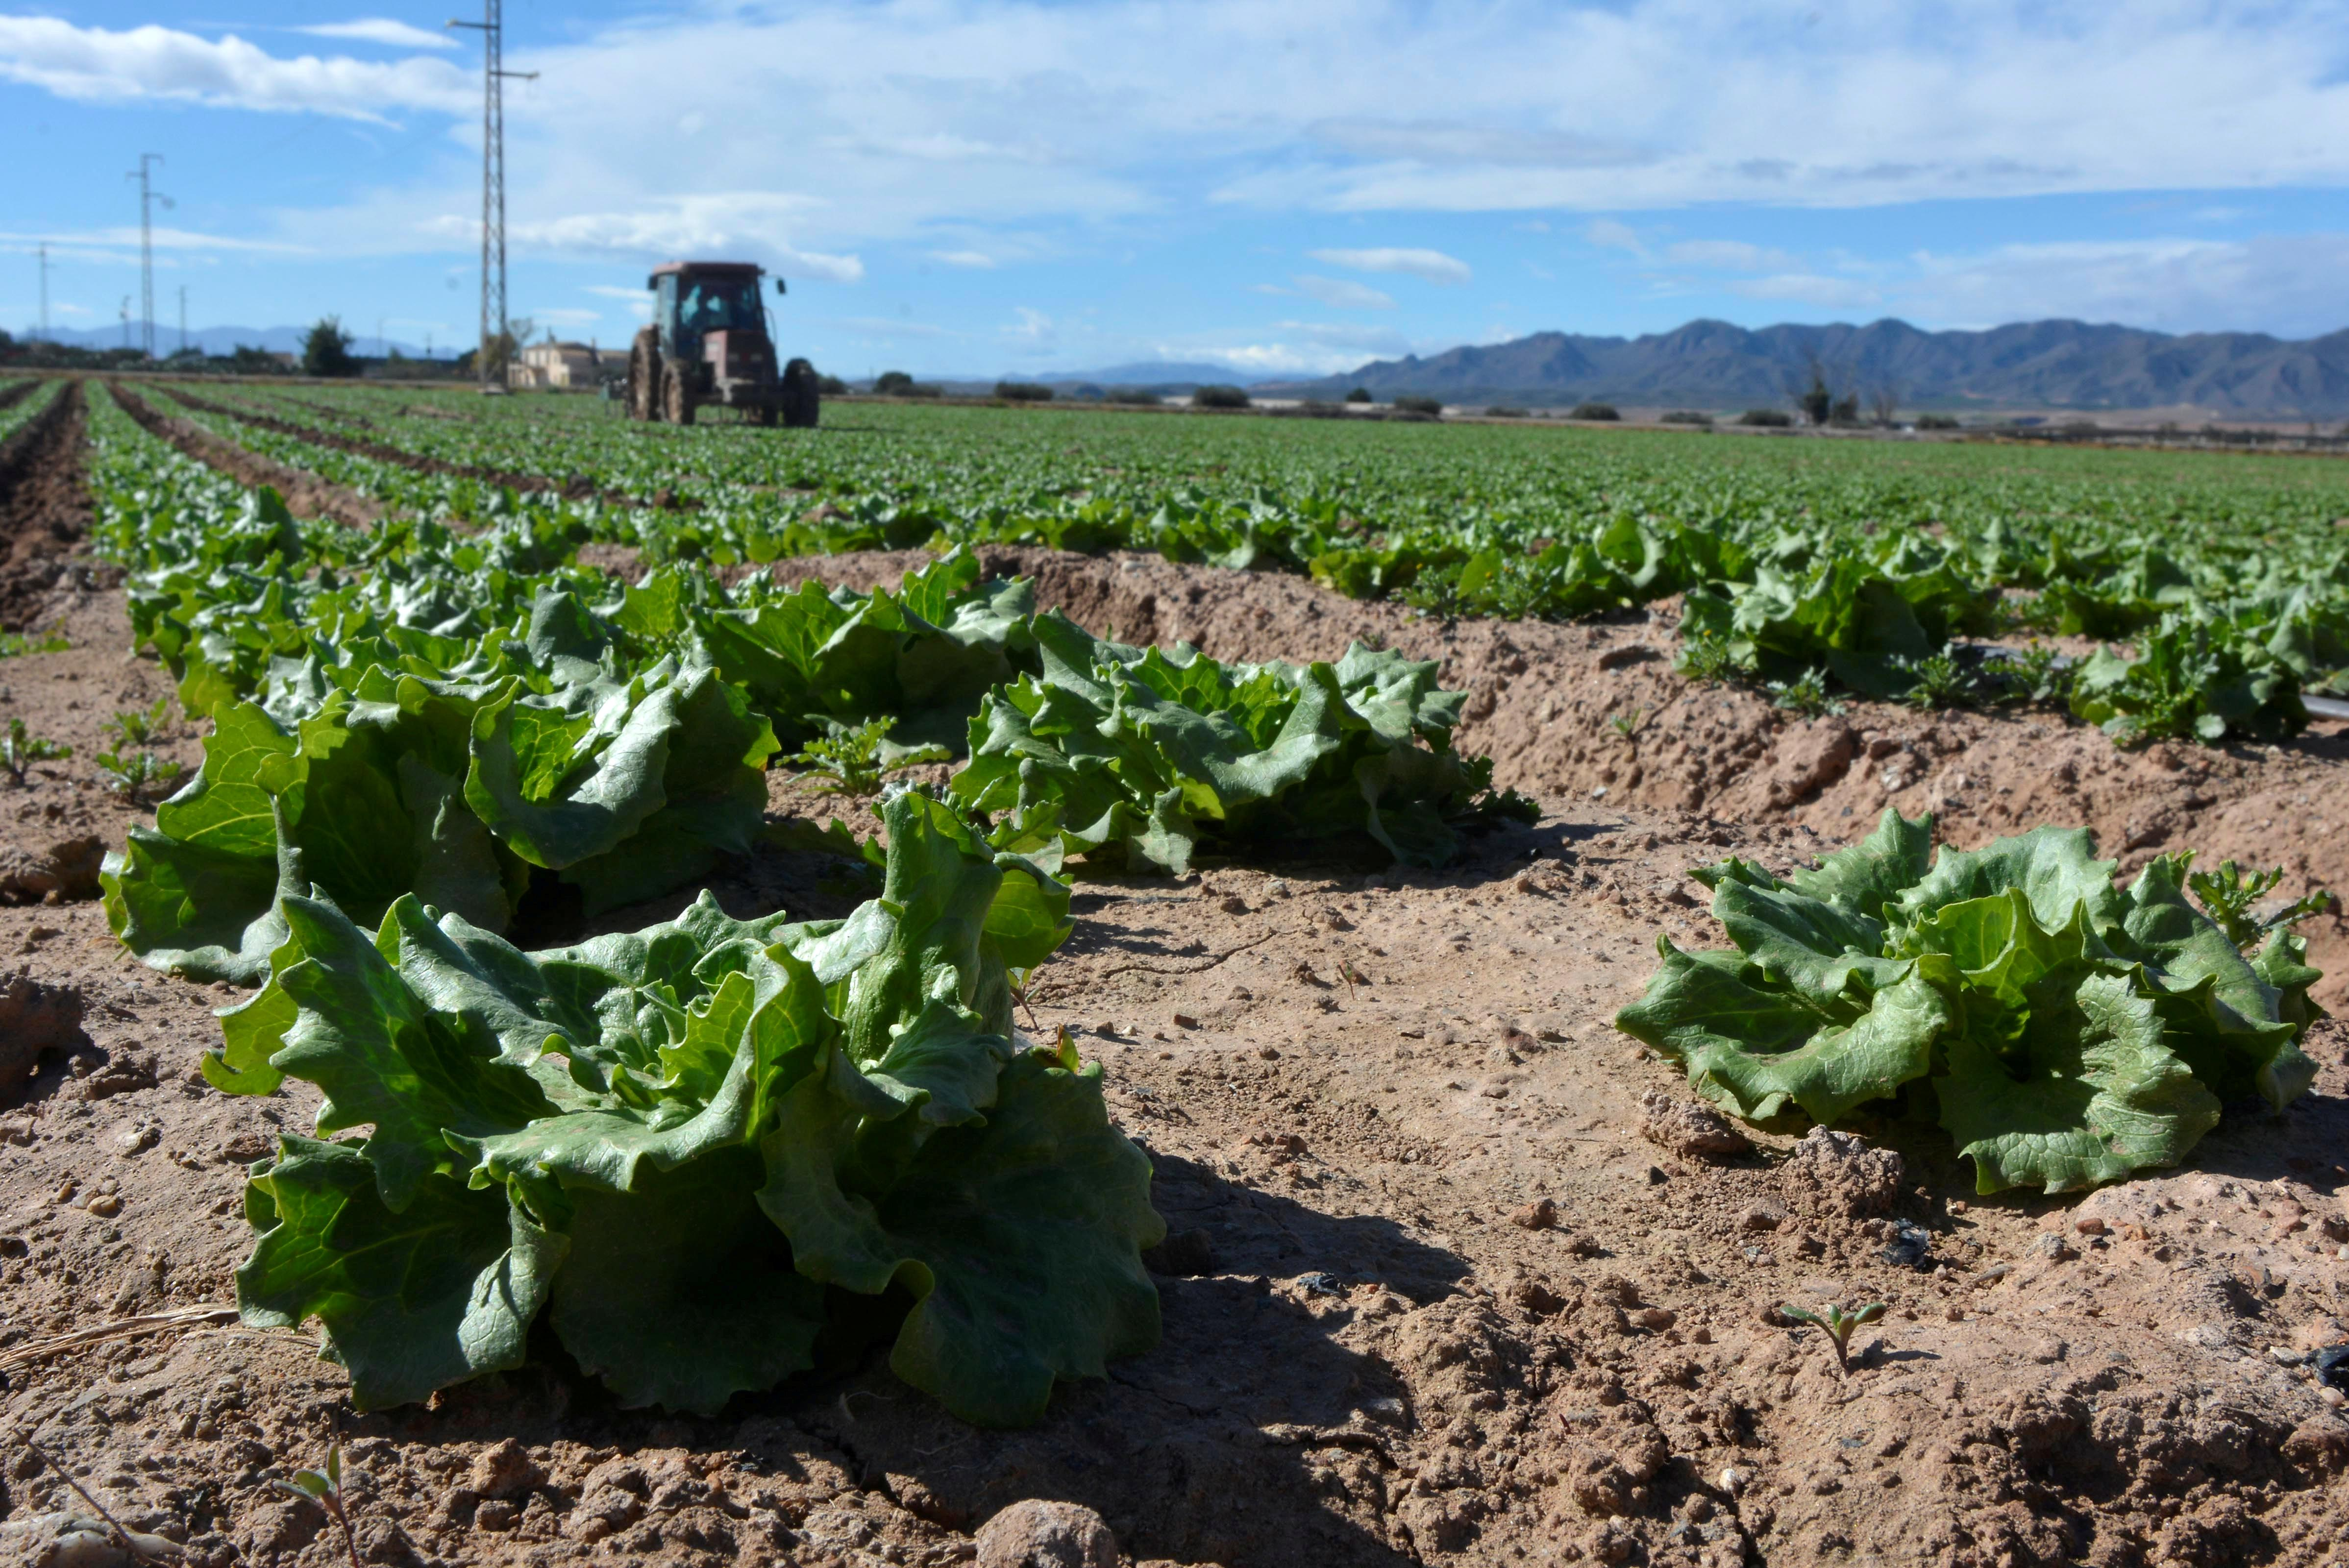 Getting lettuce into Britain: Spanish farmers baulk at no-deal Brexit